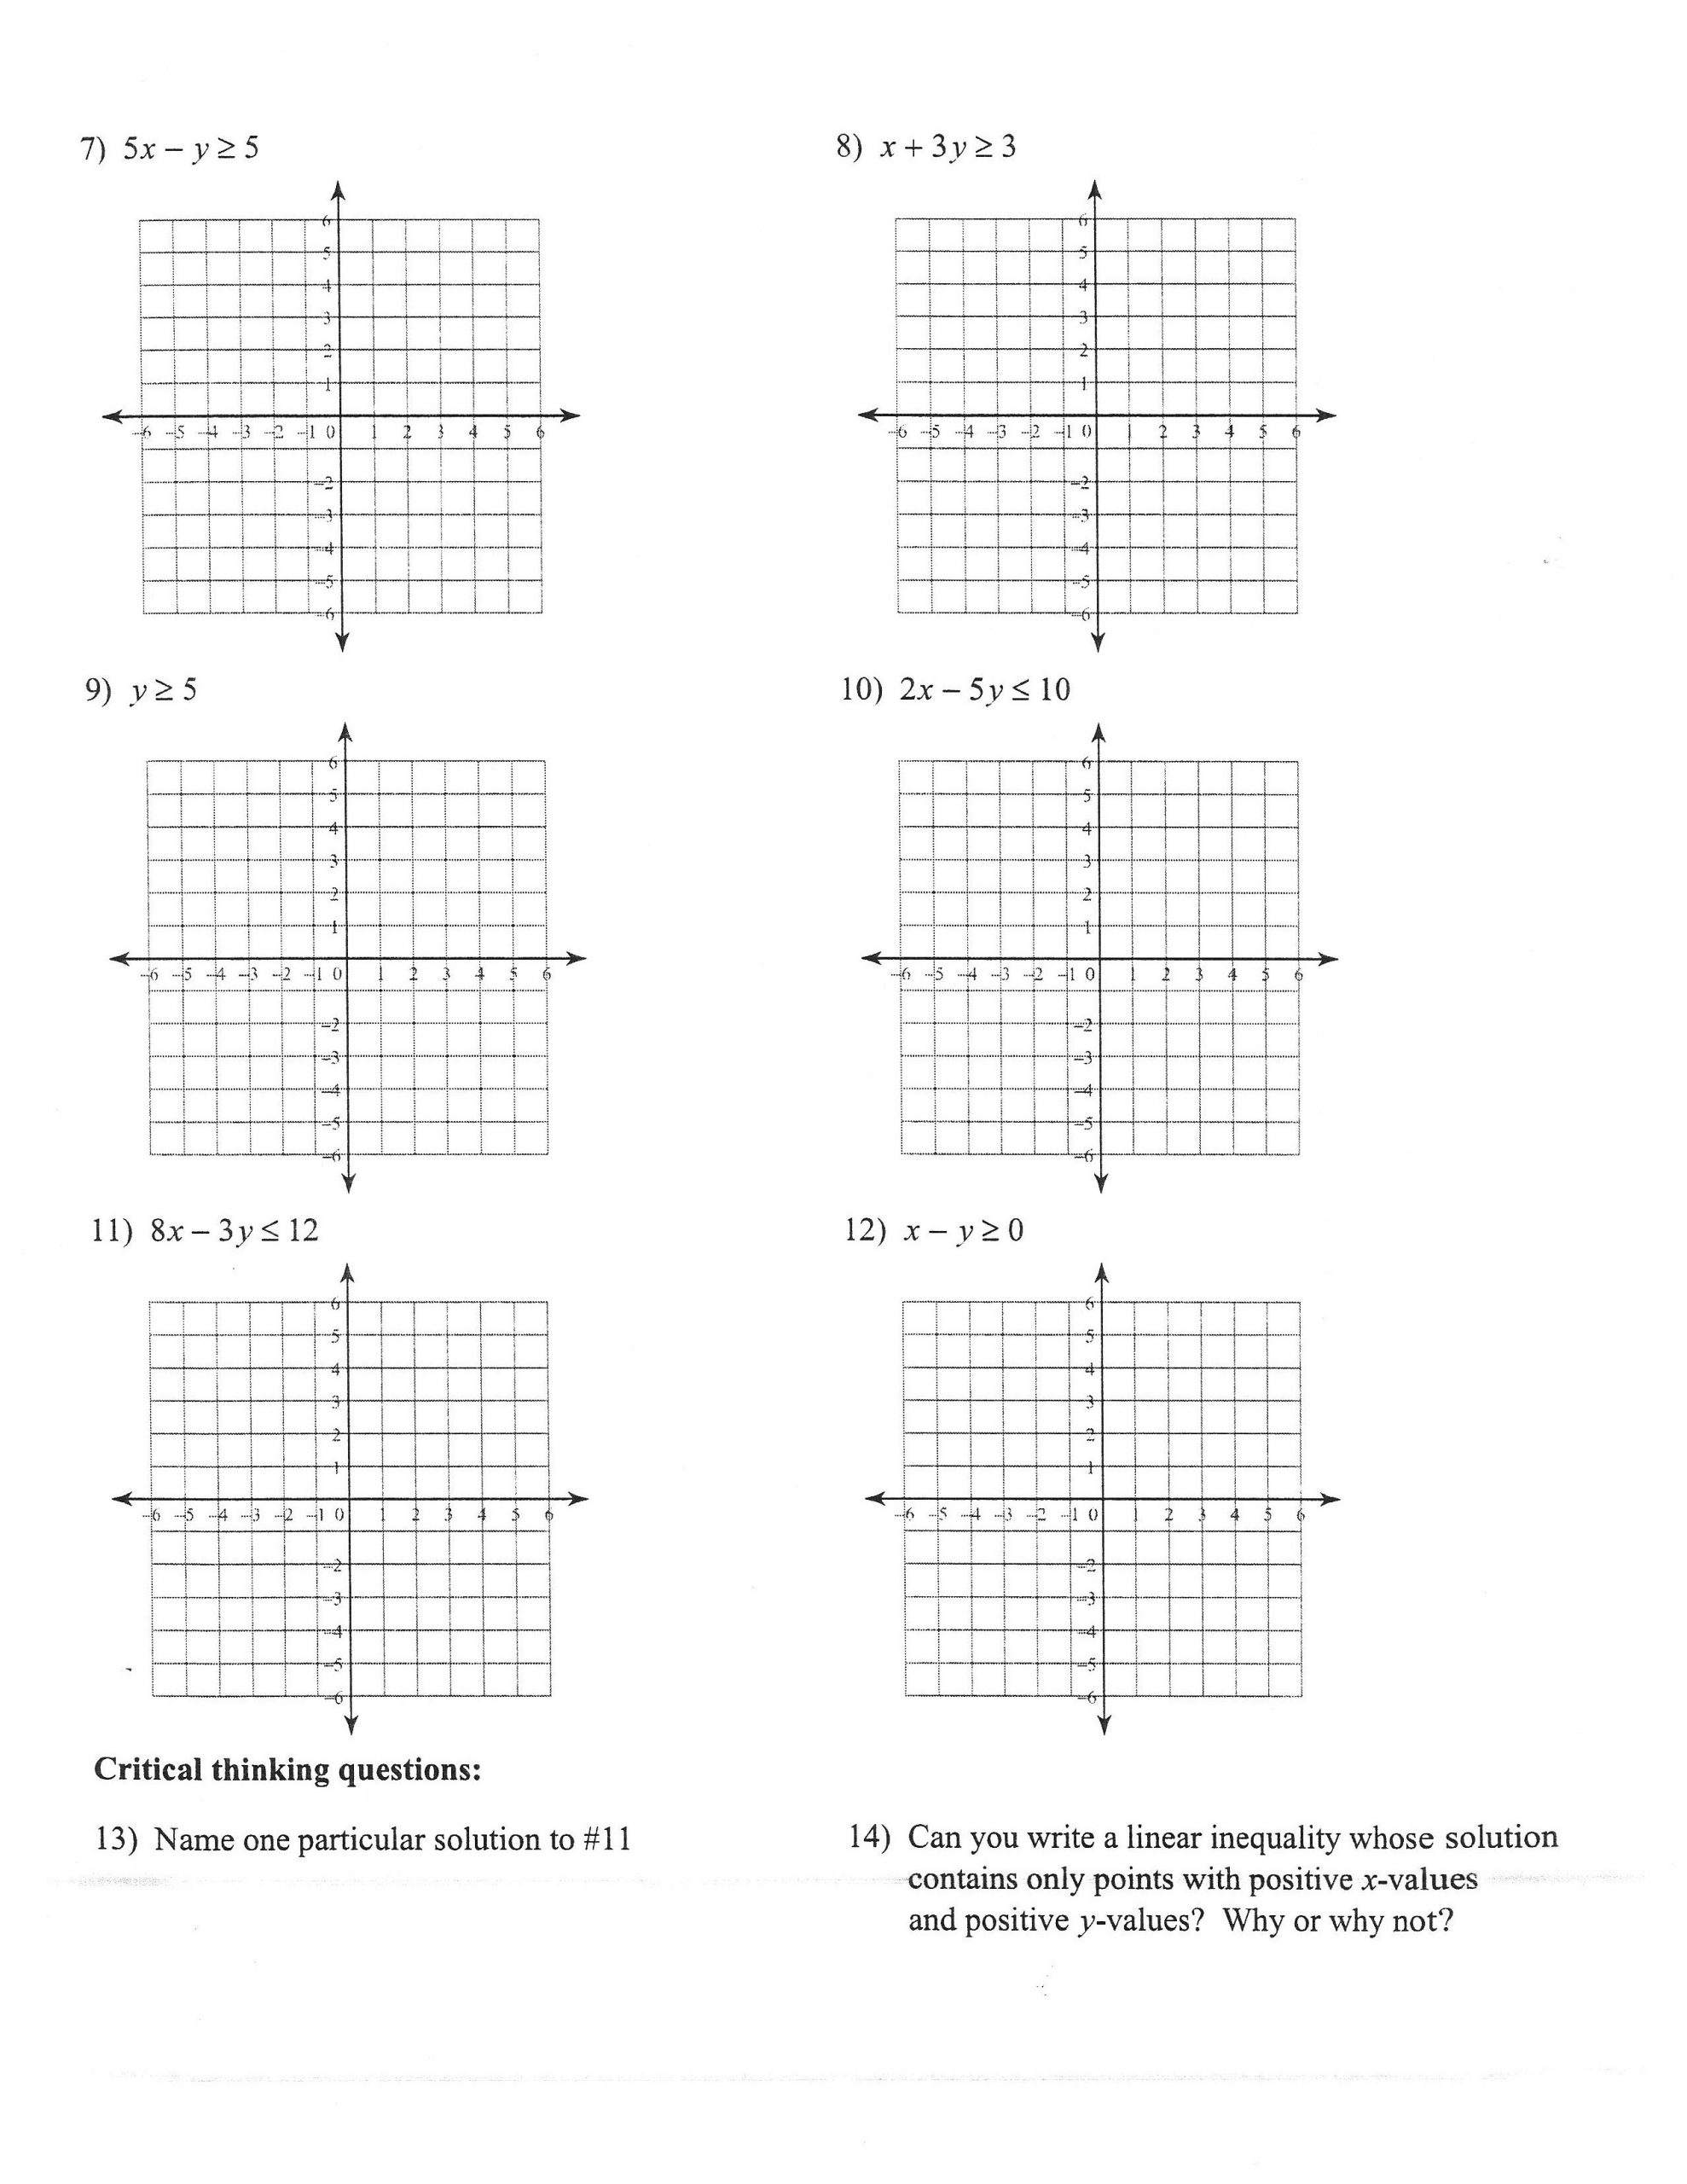 Graphing Linear Inequalities Worksheet Answers 32 Graphing Linear Inequalities Worksheet Answers